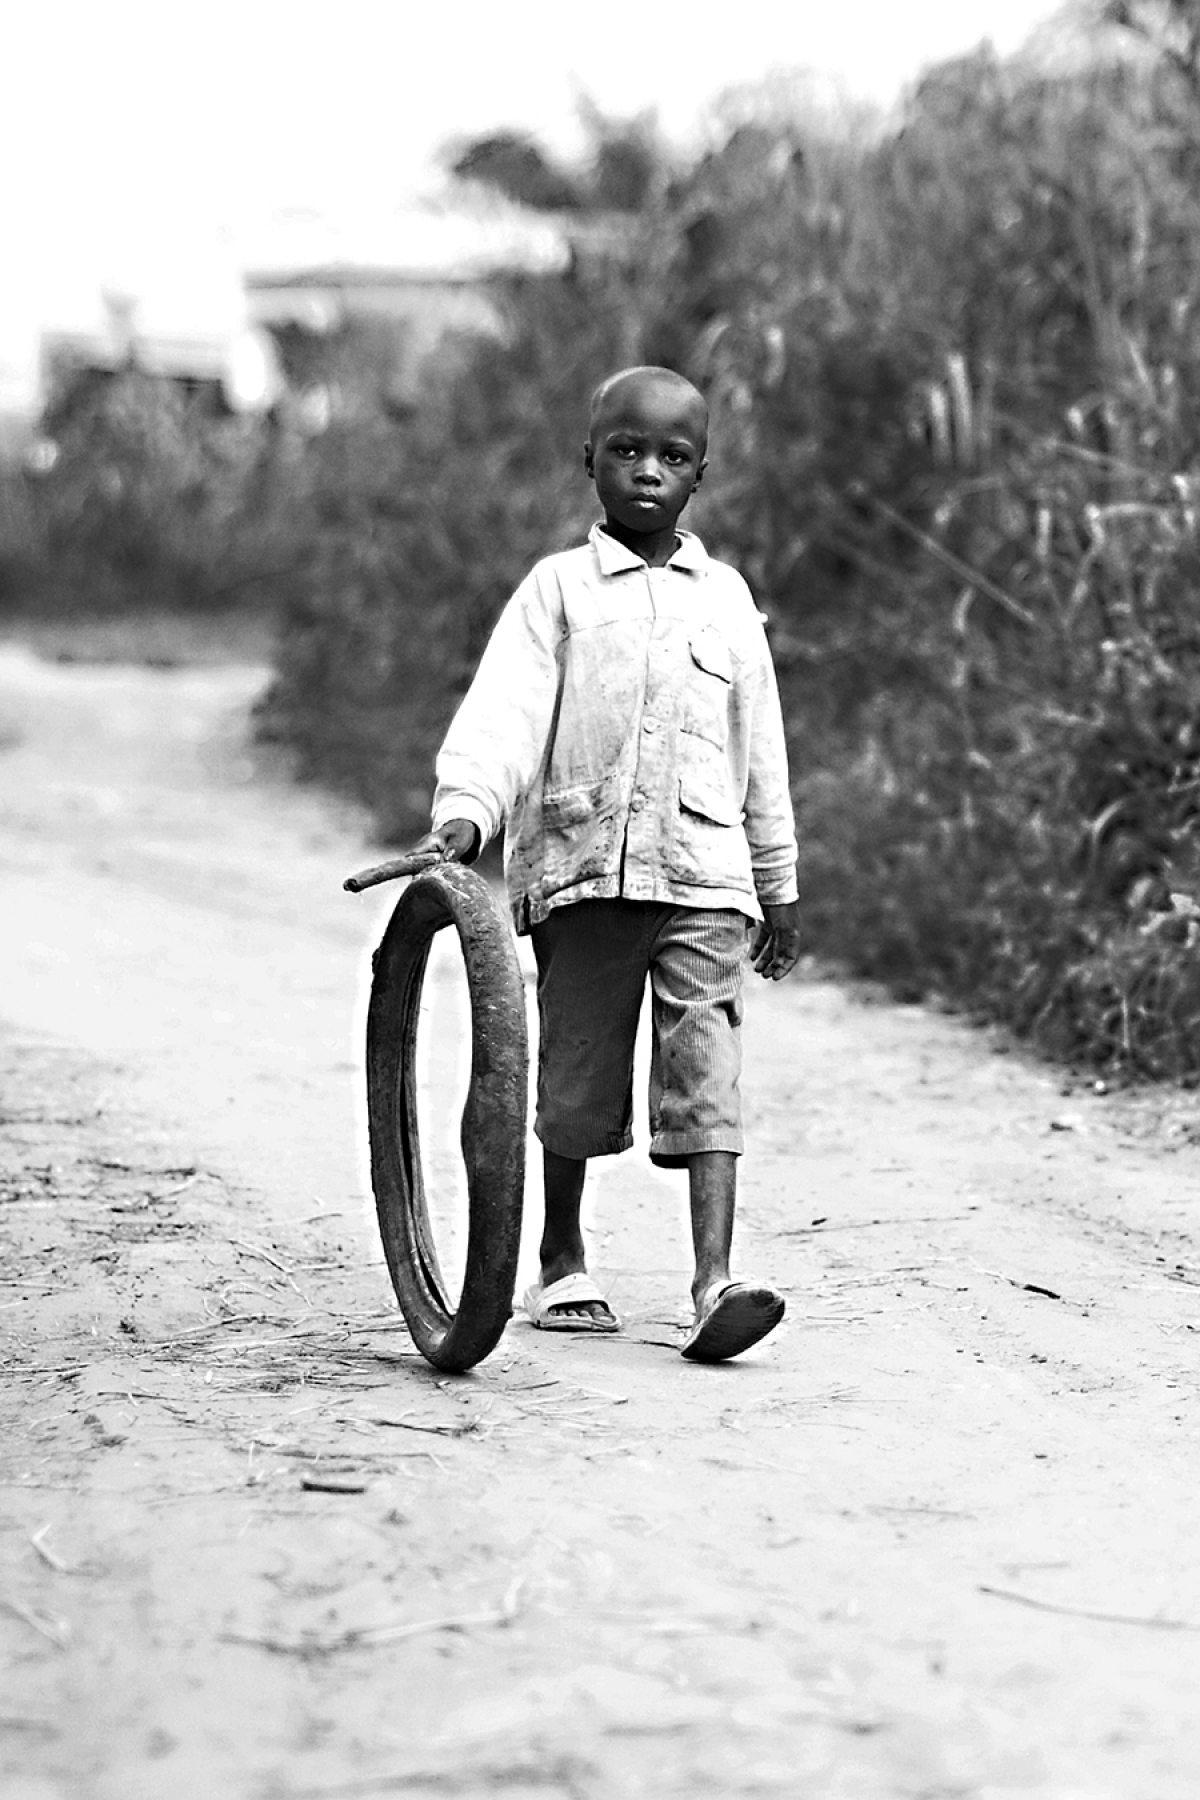 Children of Cameroon 4